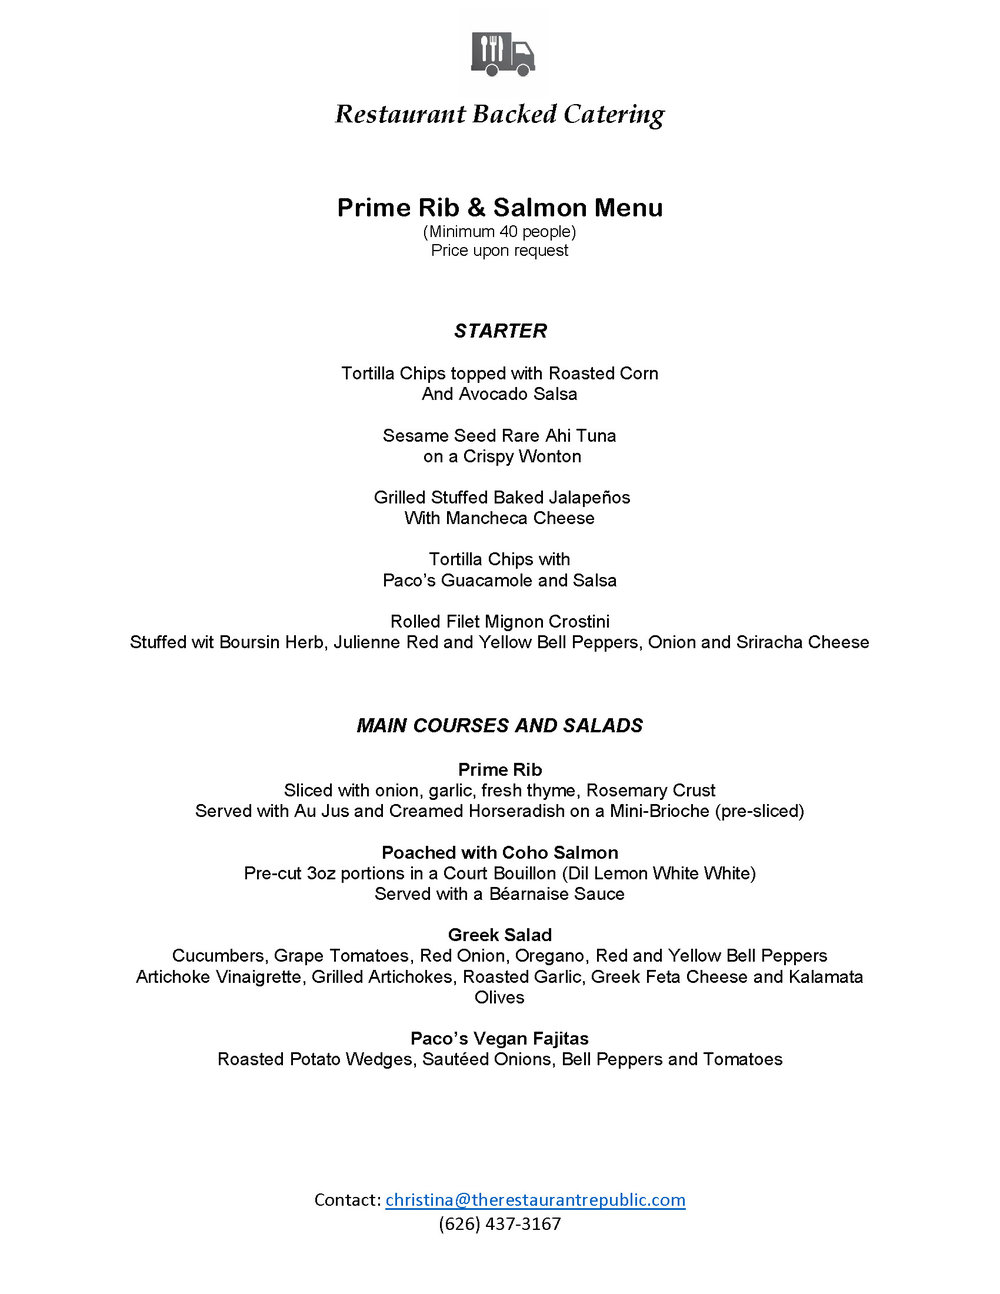 rbacked prime rib and salmon menu_page_1.jpeg